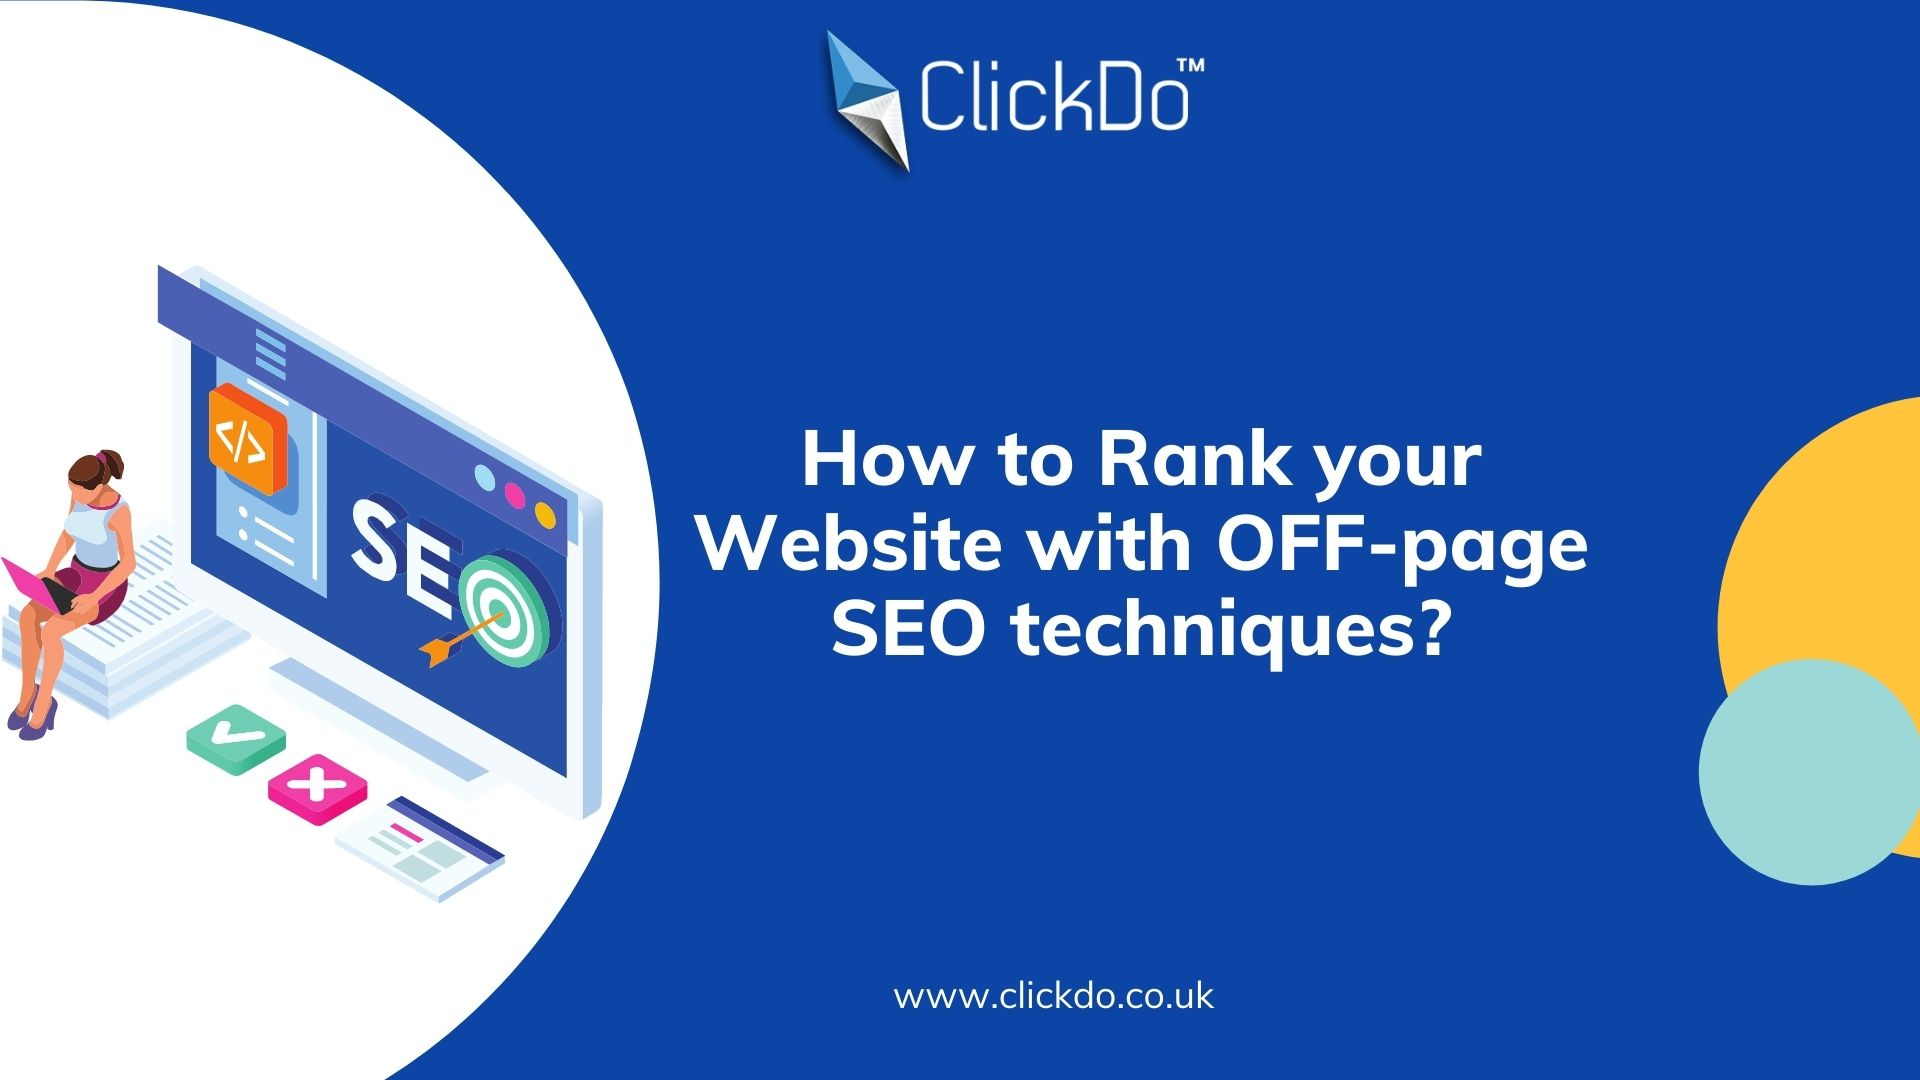 How to Rank your Website with OFF-page SEO techniques